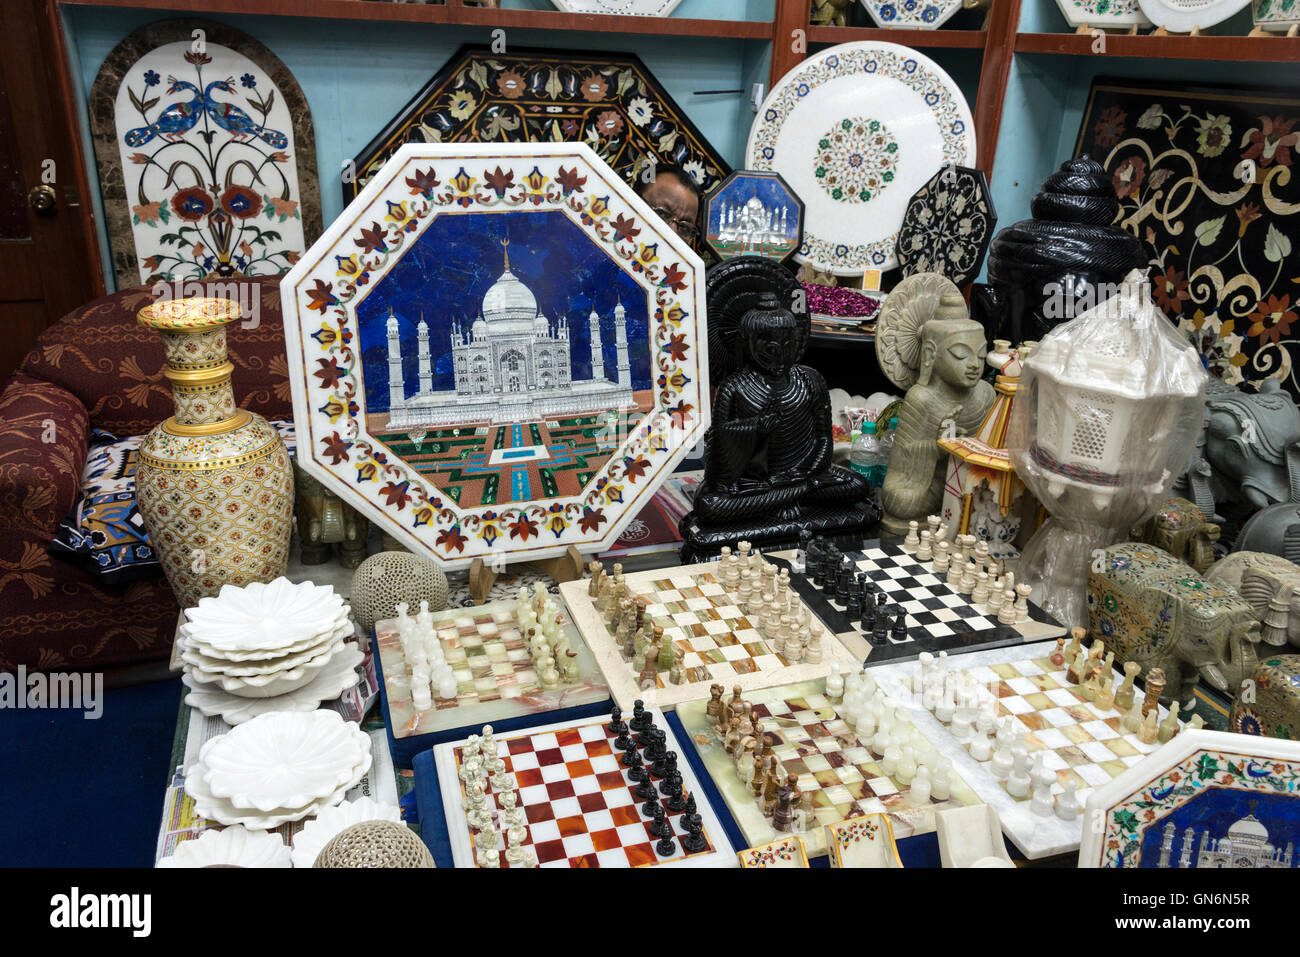 A shop display in Agra,Uttar Pradesh, India, of handmade table tops and furniture decorated with handmade highly - Stock Image